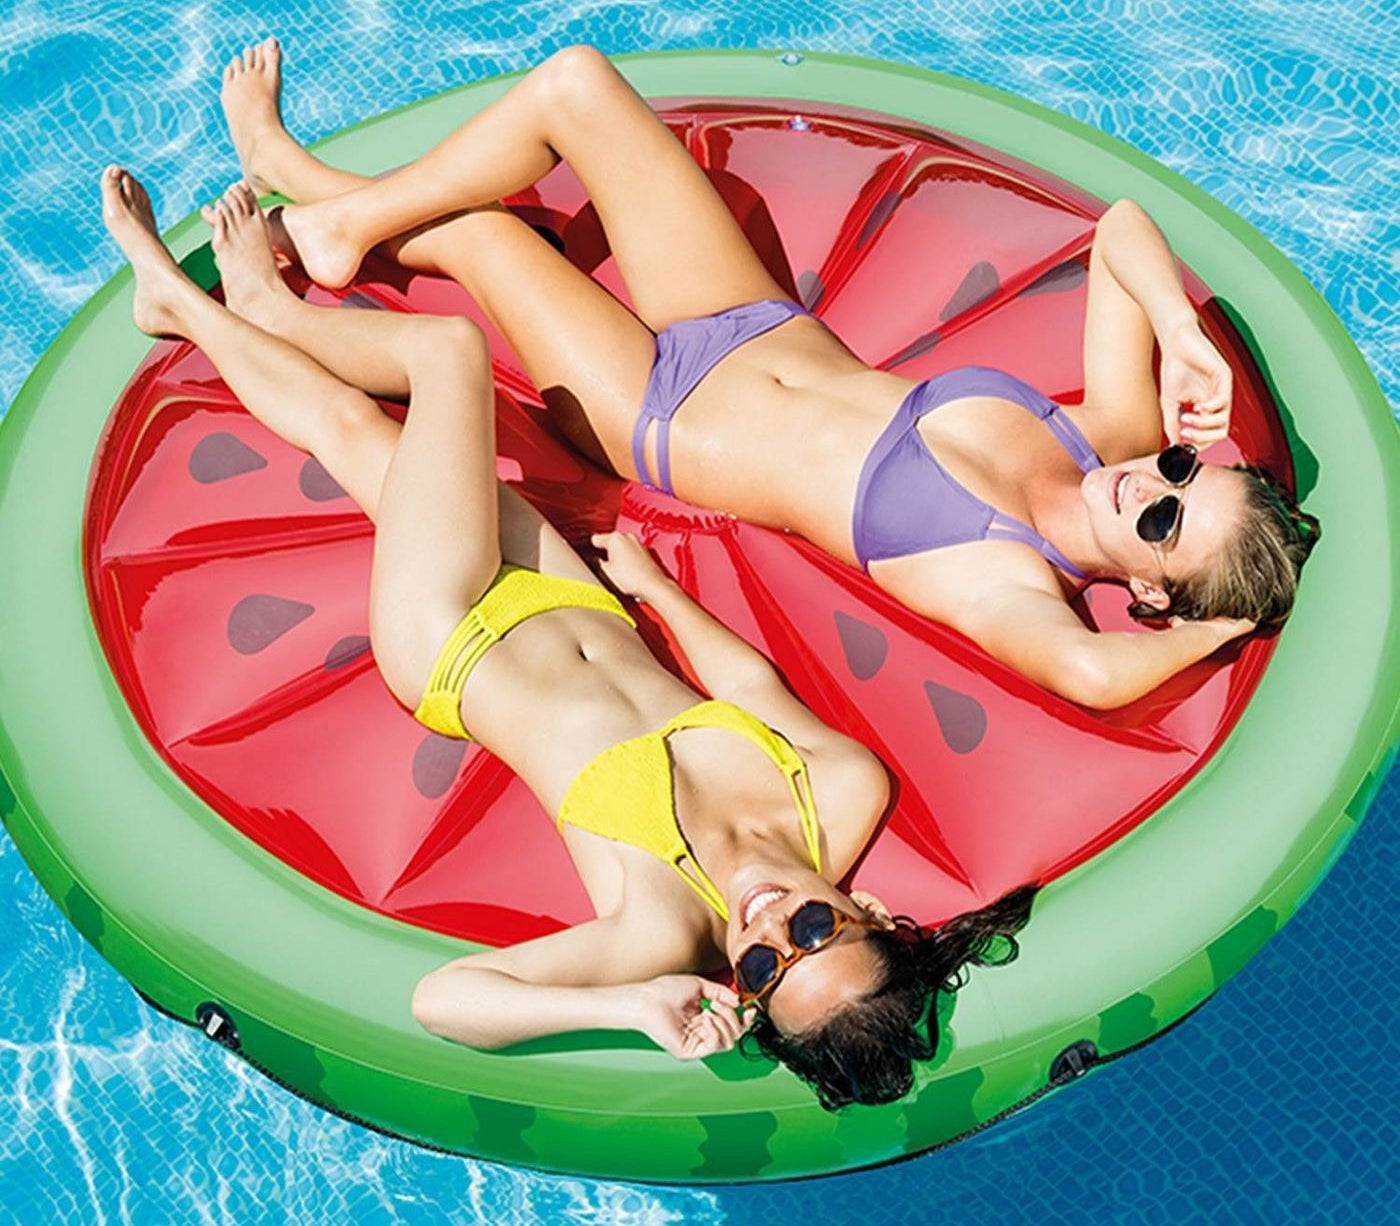 Two models lounging on a green and red water melon pool float